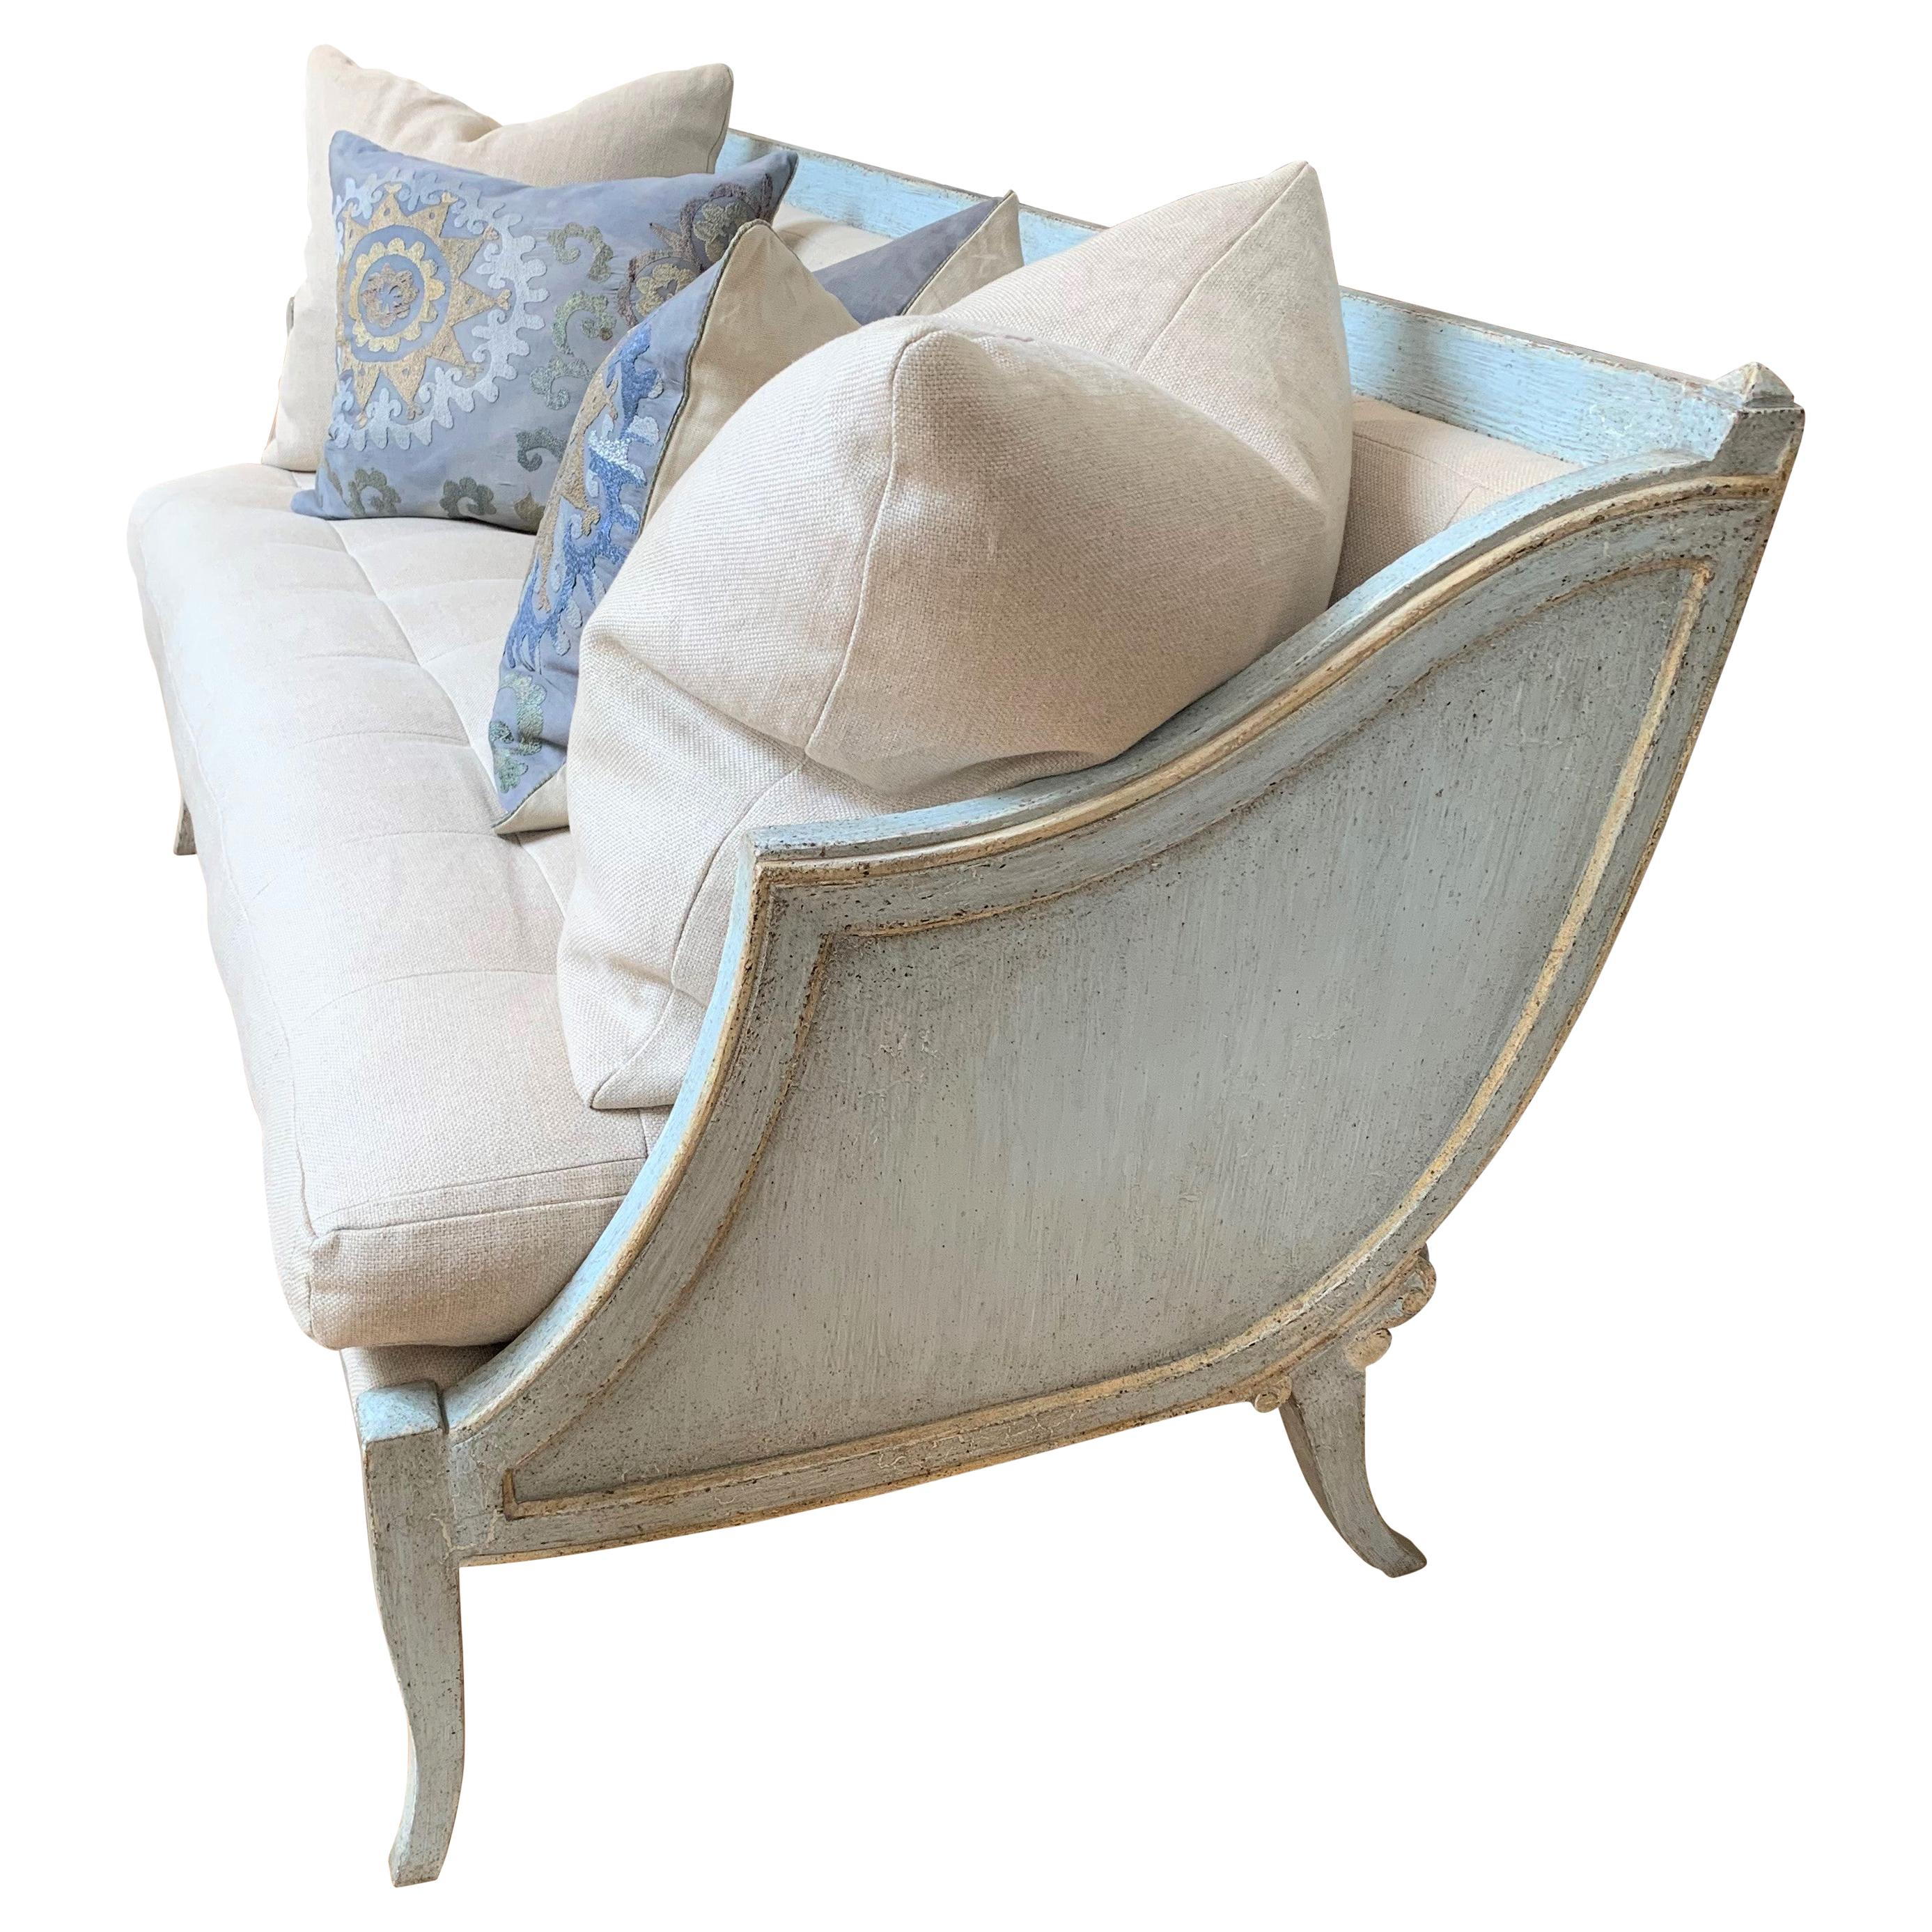 Italian Hand Painted Sleigh Settee, Antiqued Blue Crackle Finish